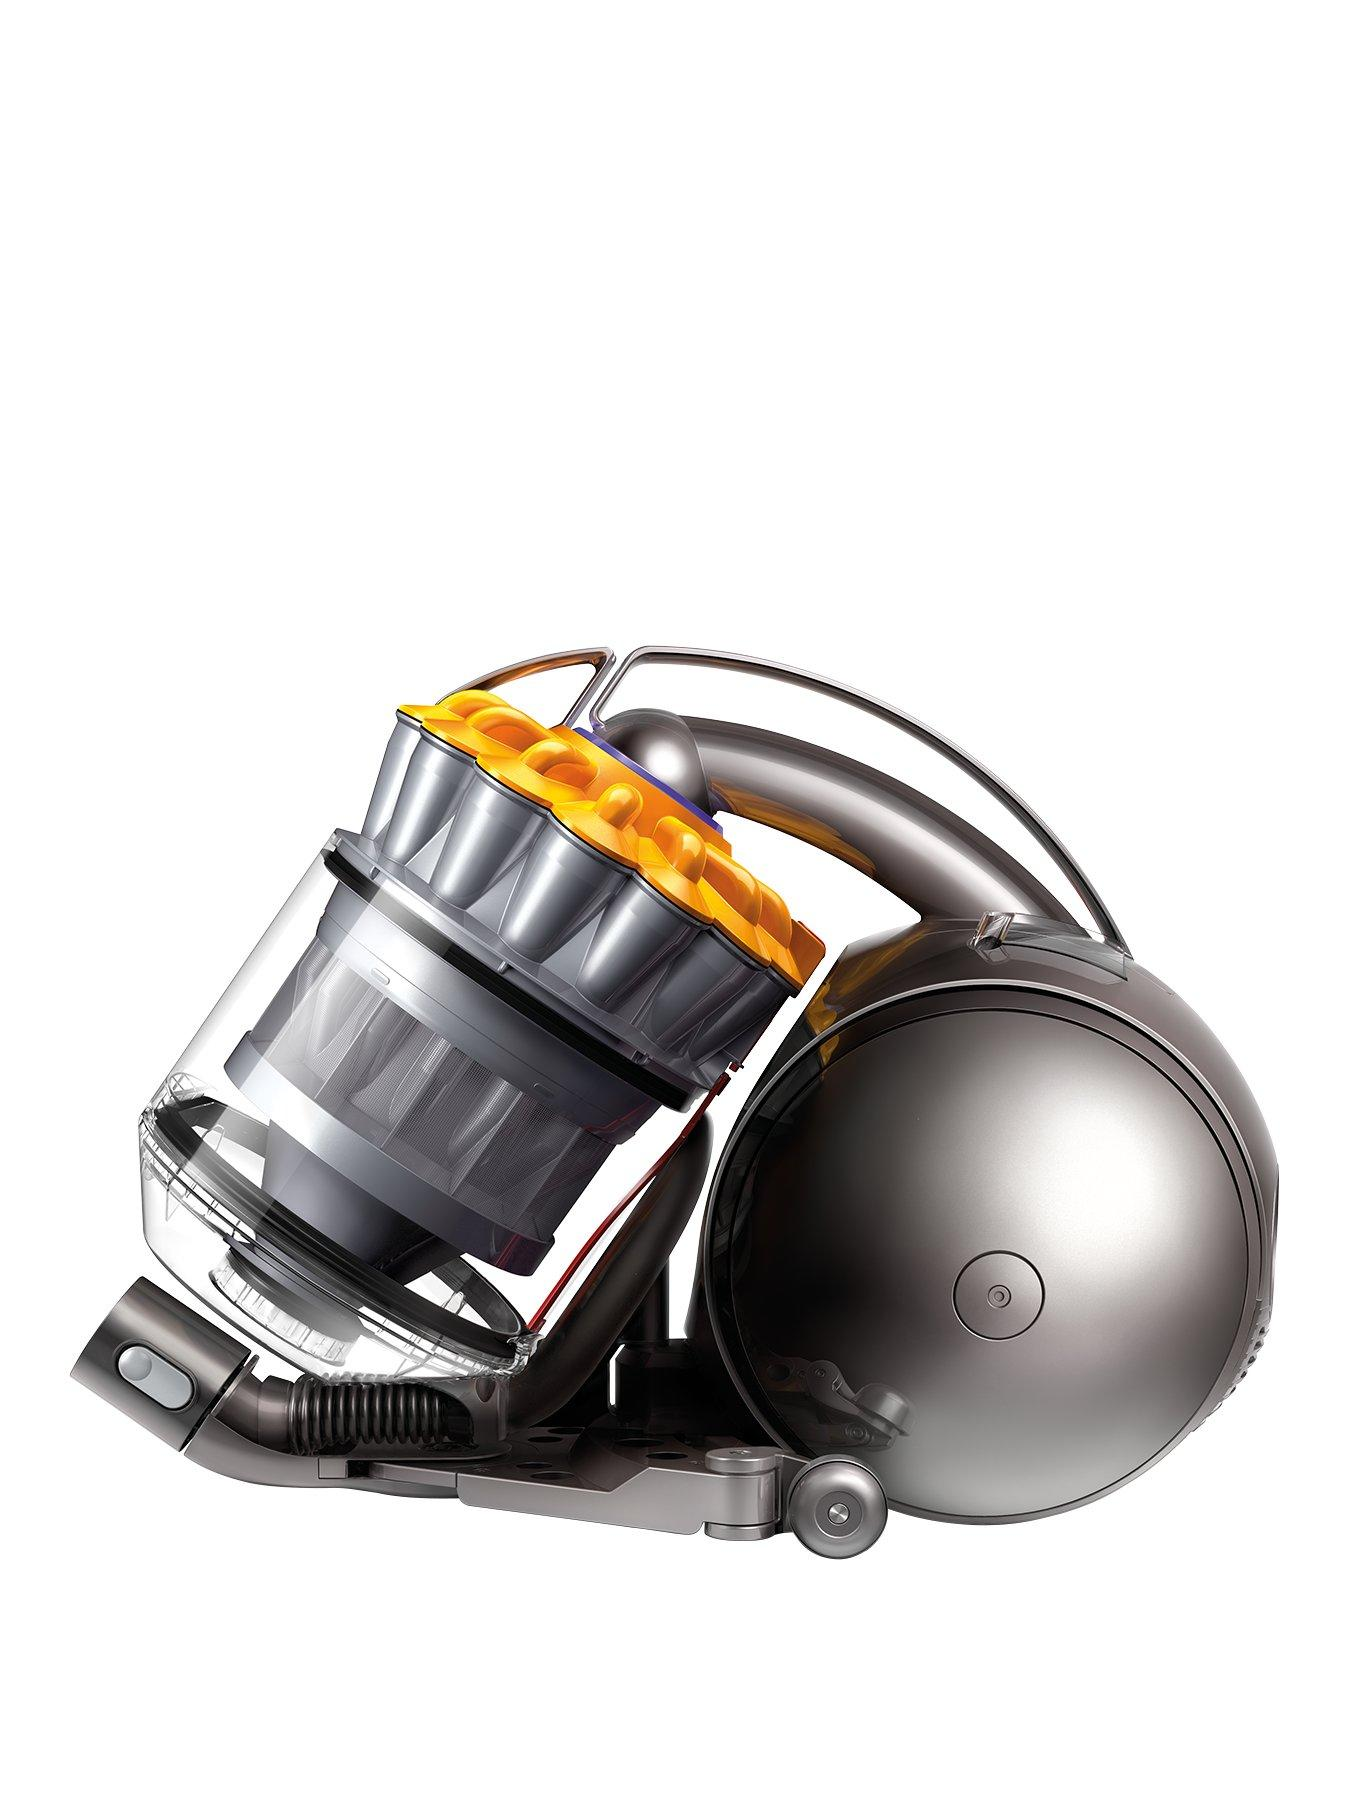 dyson dc39 multifloor cylinder vacuum cleaner - Dyson Vacuum Cleaner